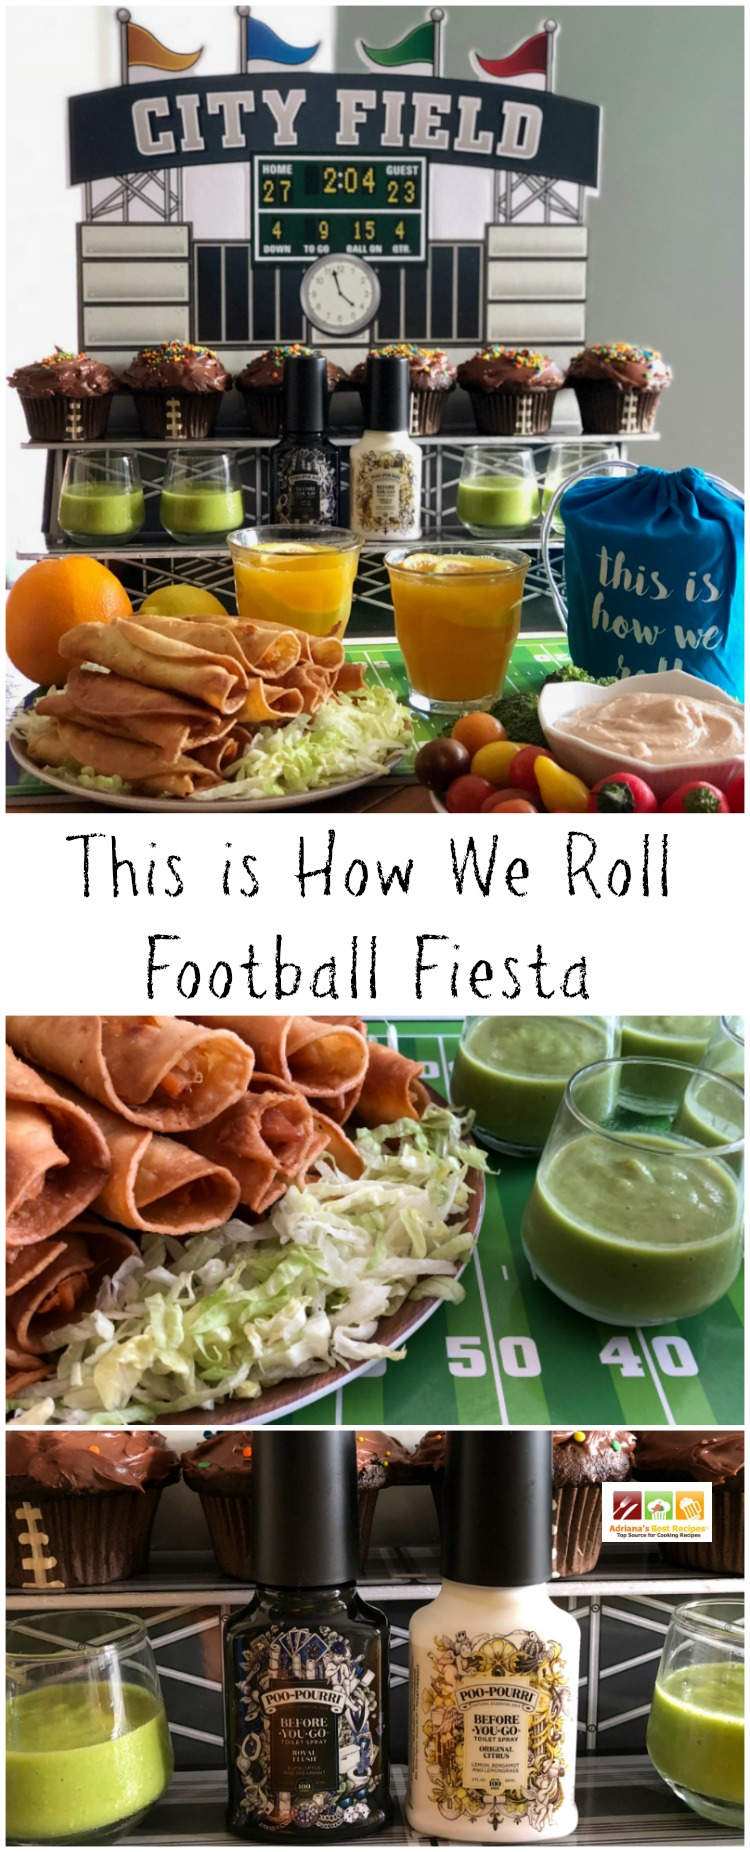 Learn how we roll when organizing a football fiesta at home